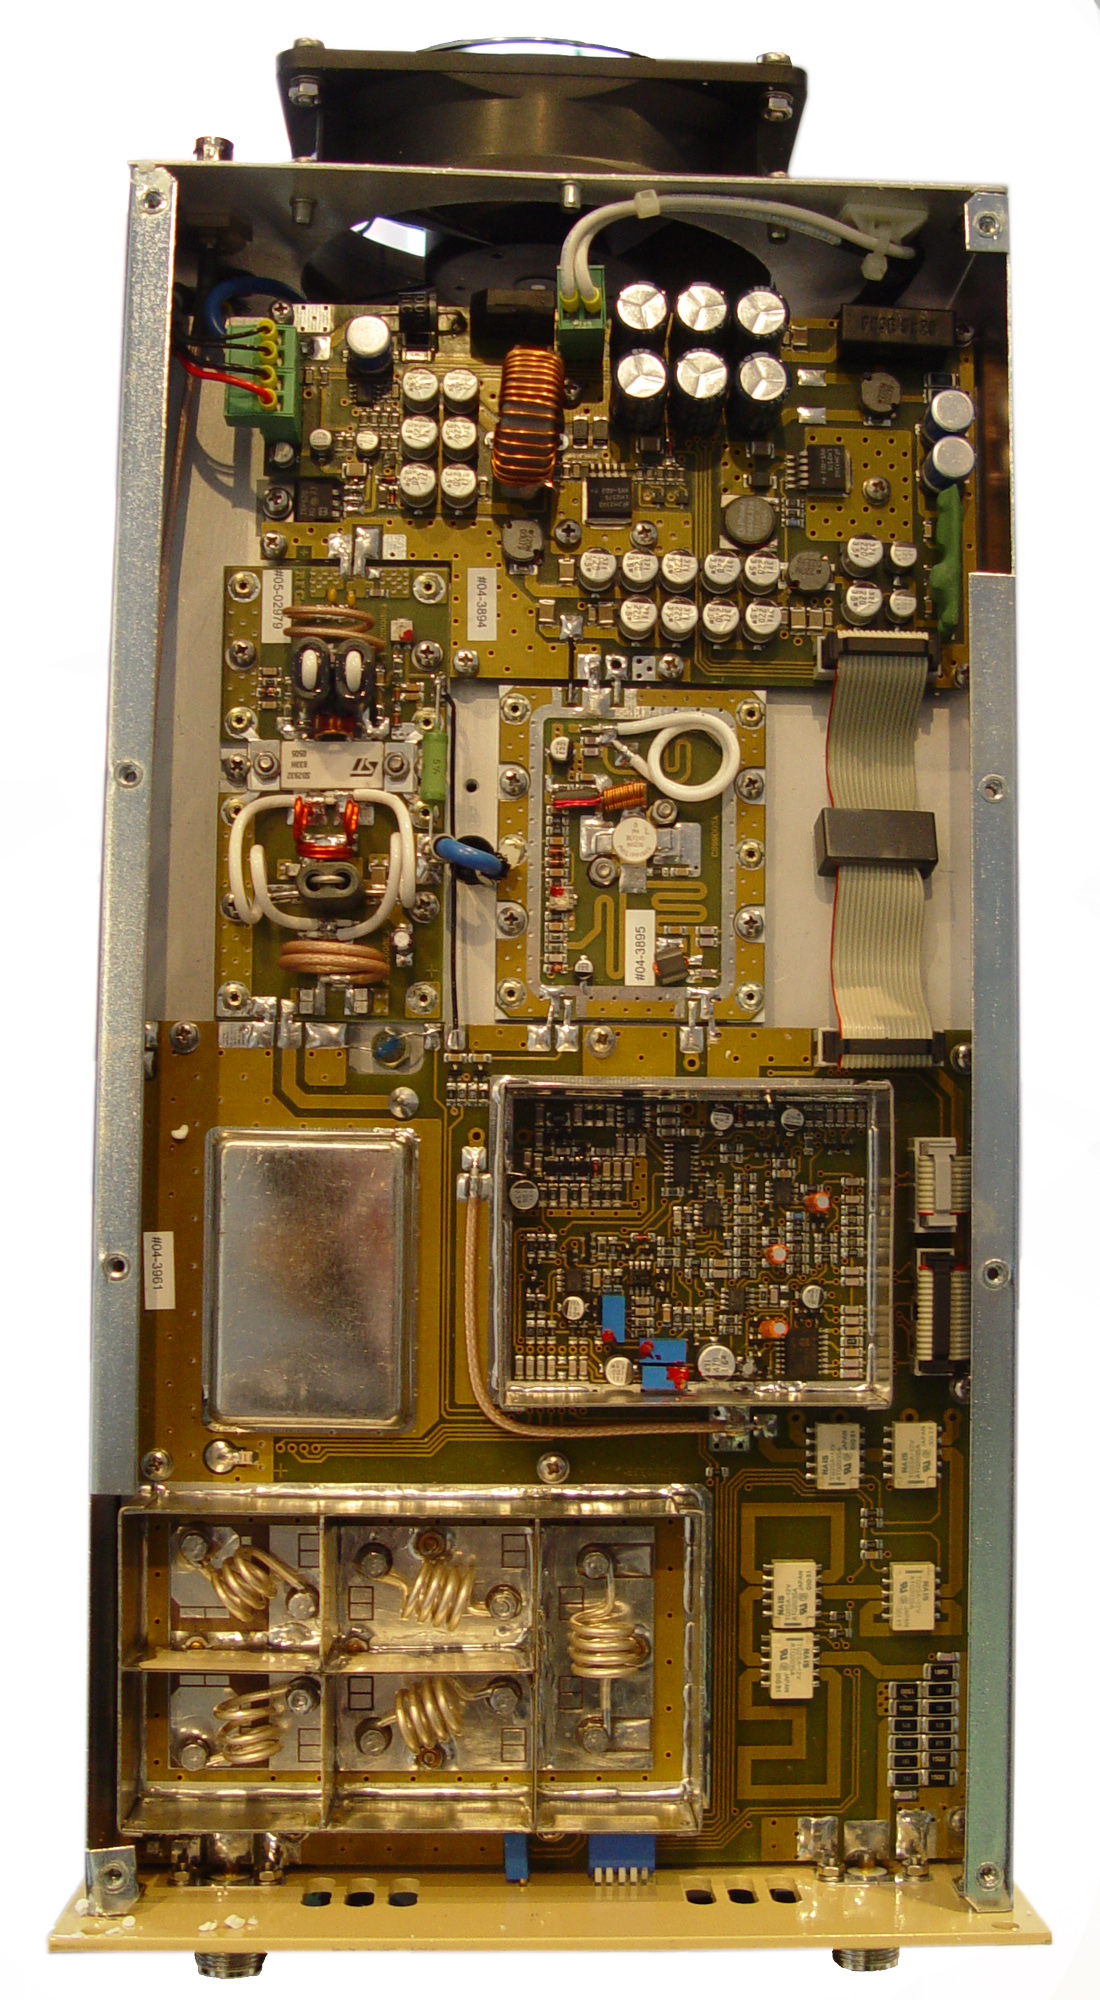 Electronic Studio Rf Amplifiers Linear Amplifier Fm 80 To 135 Mhz Am Vhf Receiver Circuit Board Design Larger Picture